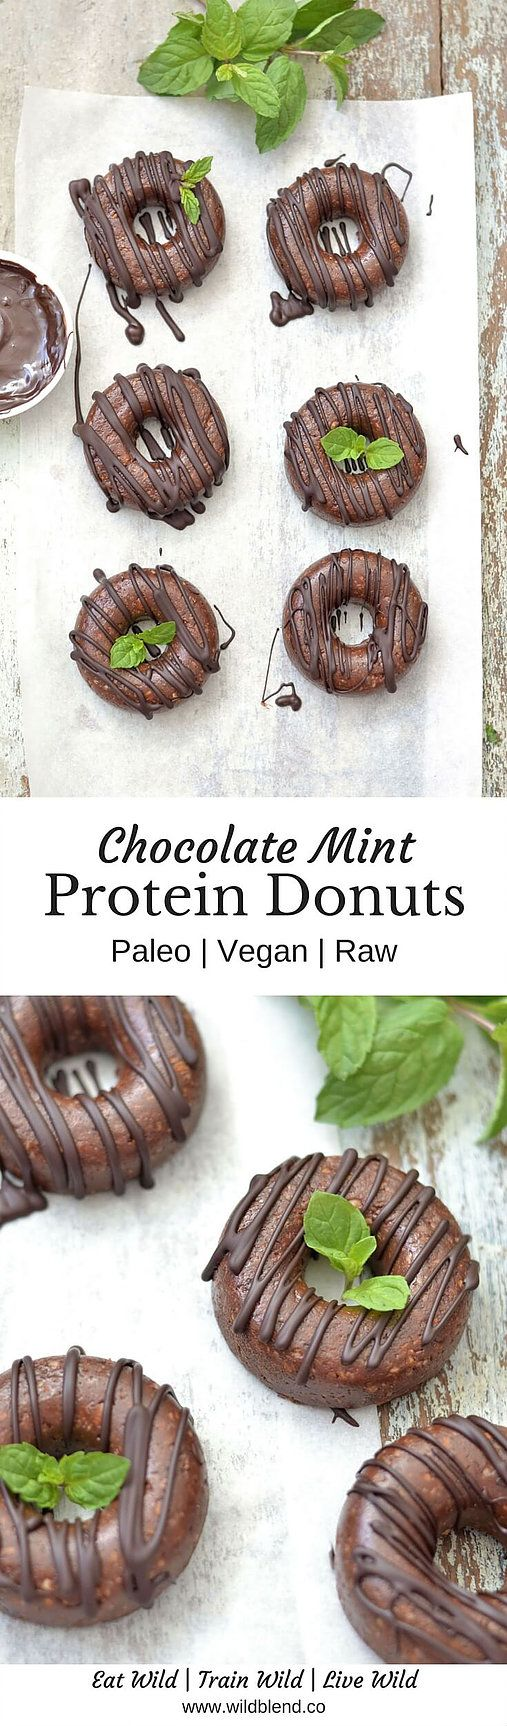 National Doughnut Day you say? Sounds like the best holiday EVER! To celebrate, I made these raw Vegan No-Dough-Nuts which are, you've guessed it, RawNuts. Eve